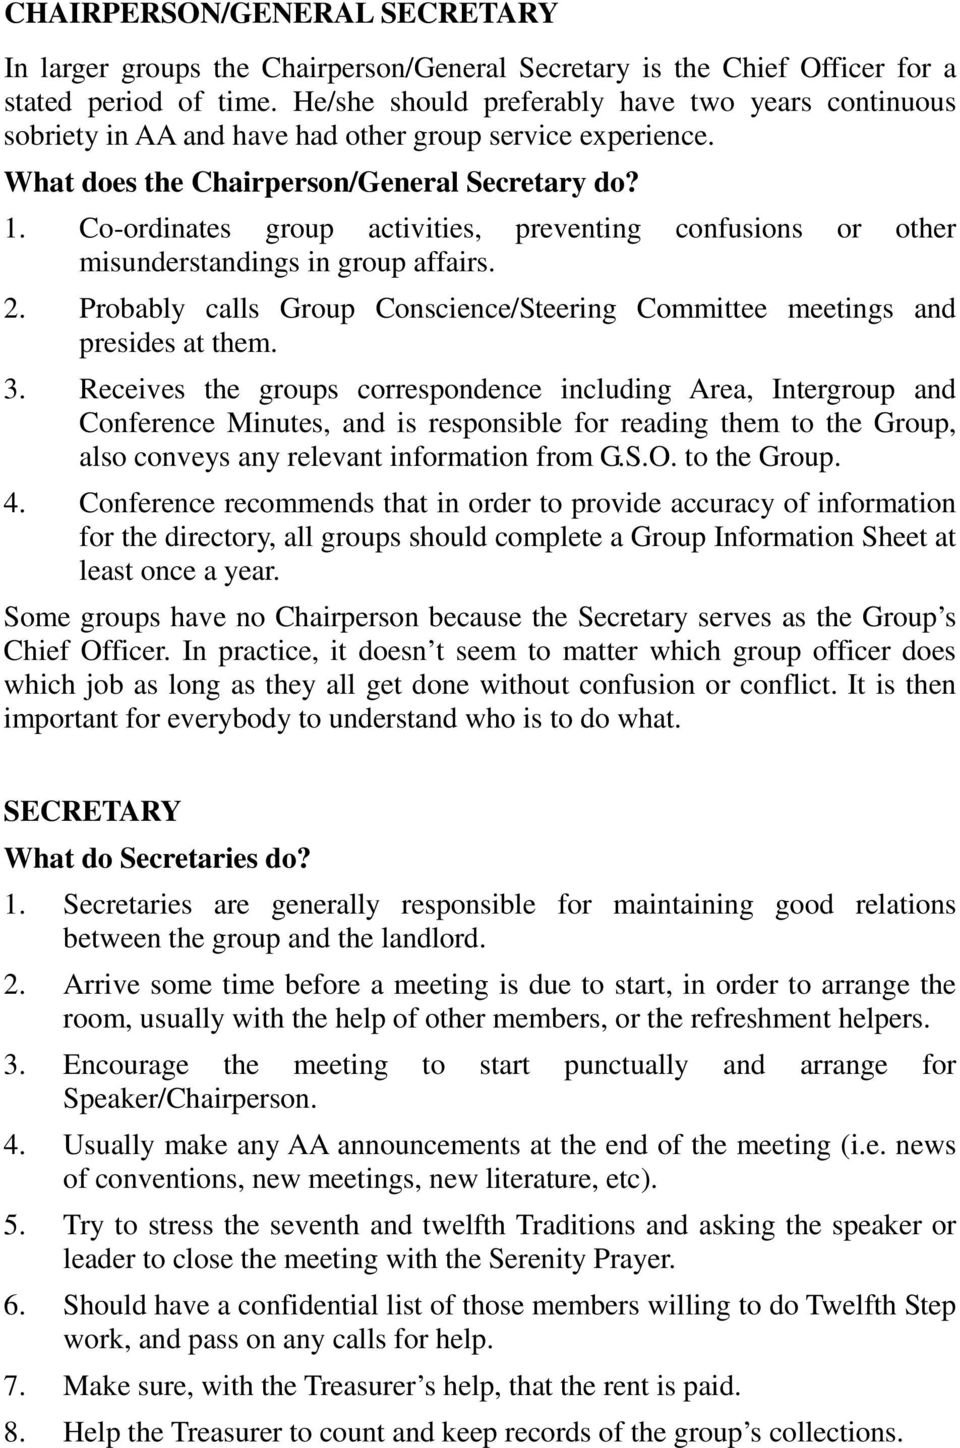 Co-ordinates group activities, preventing confusions or other misunderstandings in group affairs. 2. Probably calls Group Conscience/Steering Committee meetings and presides at them. 3.